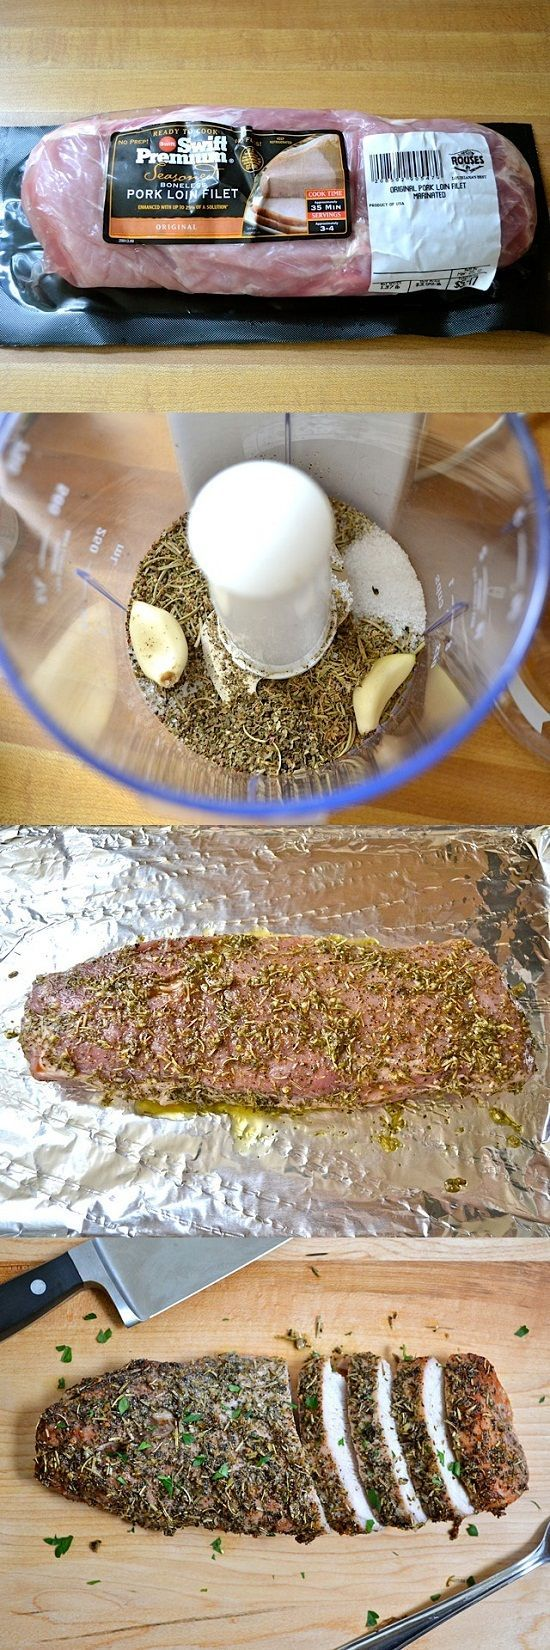 Herb Roasted Pork Loin Recipe